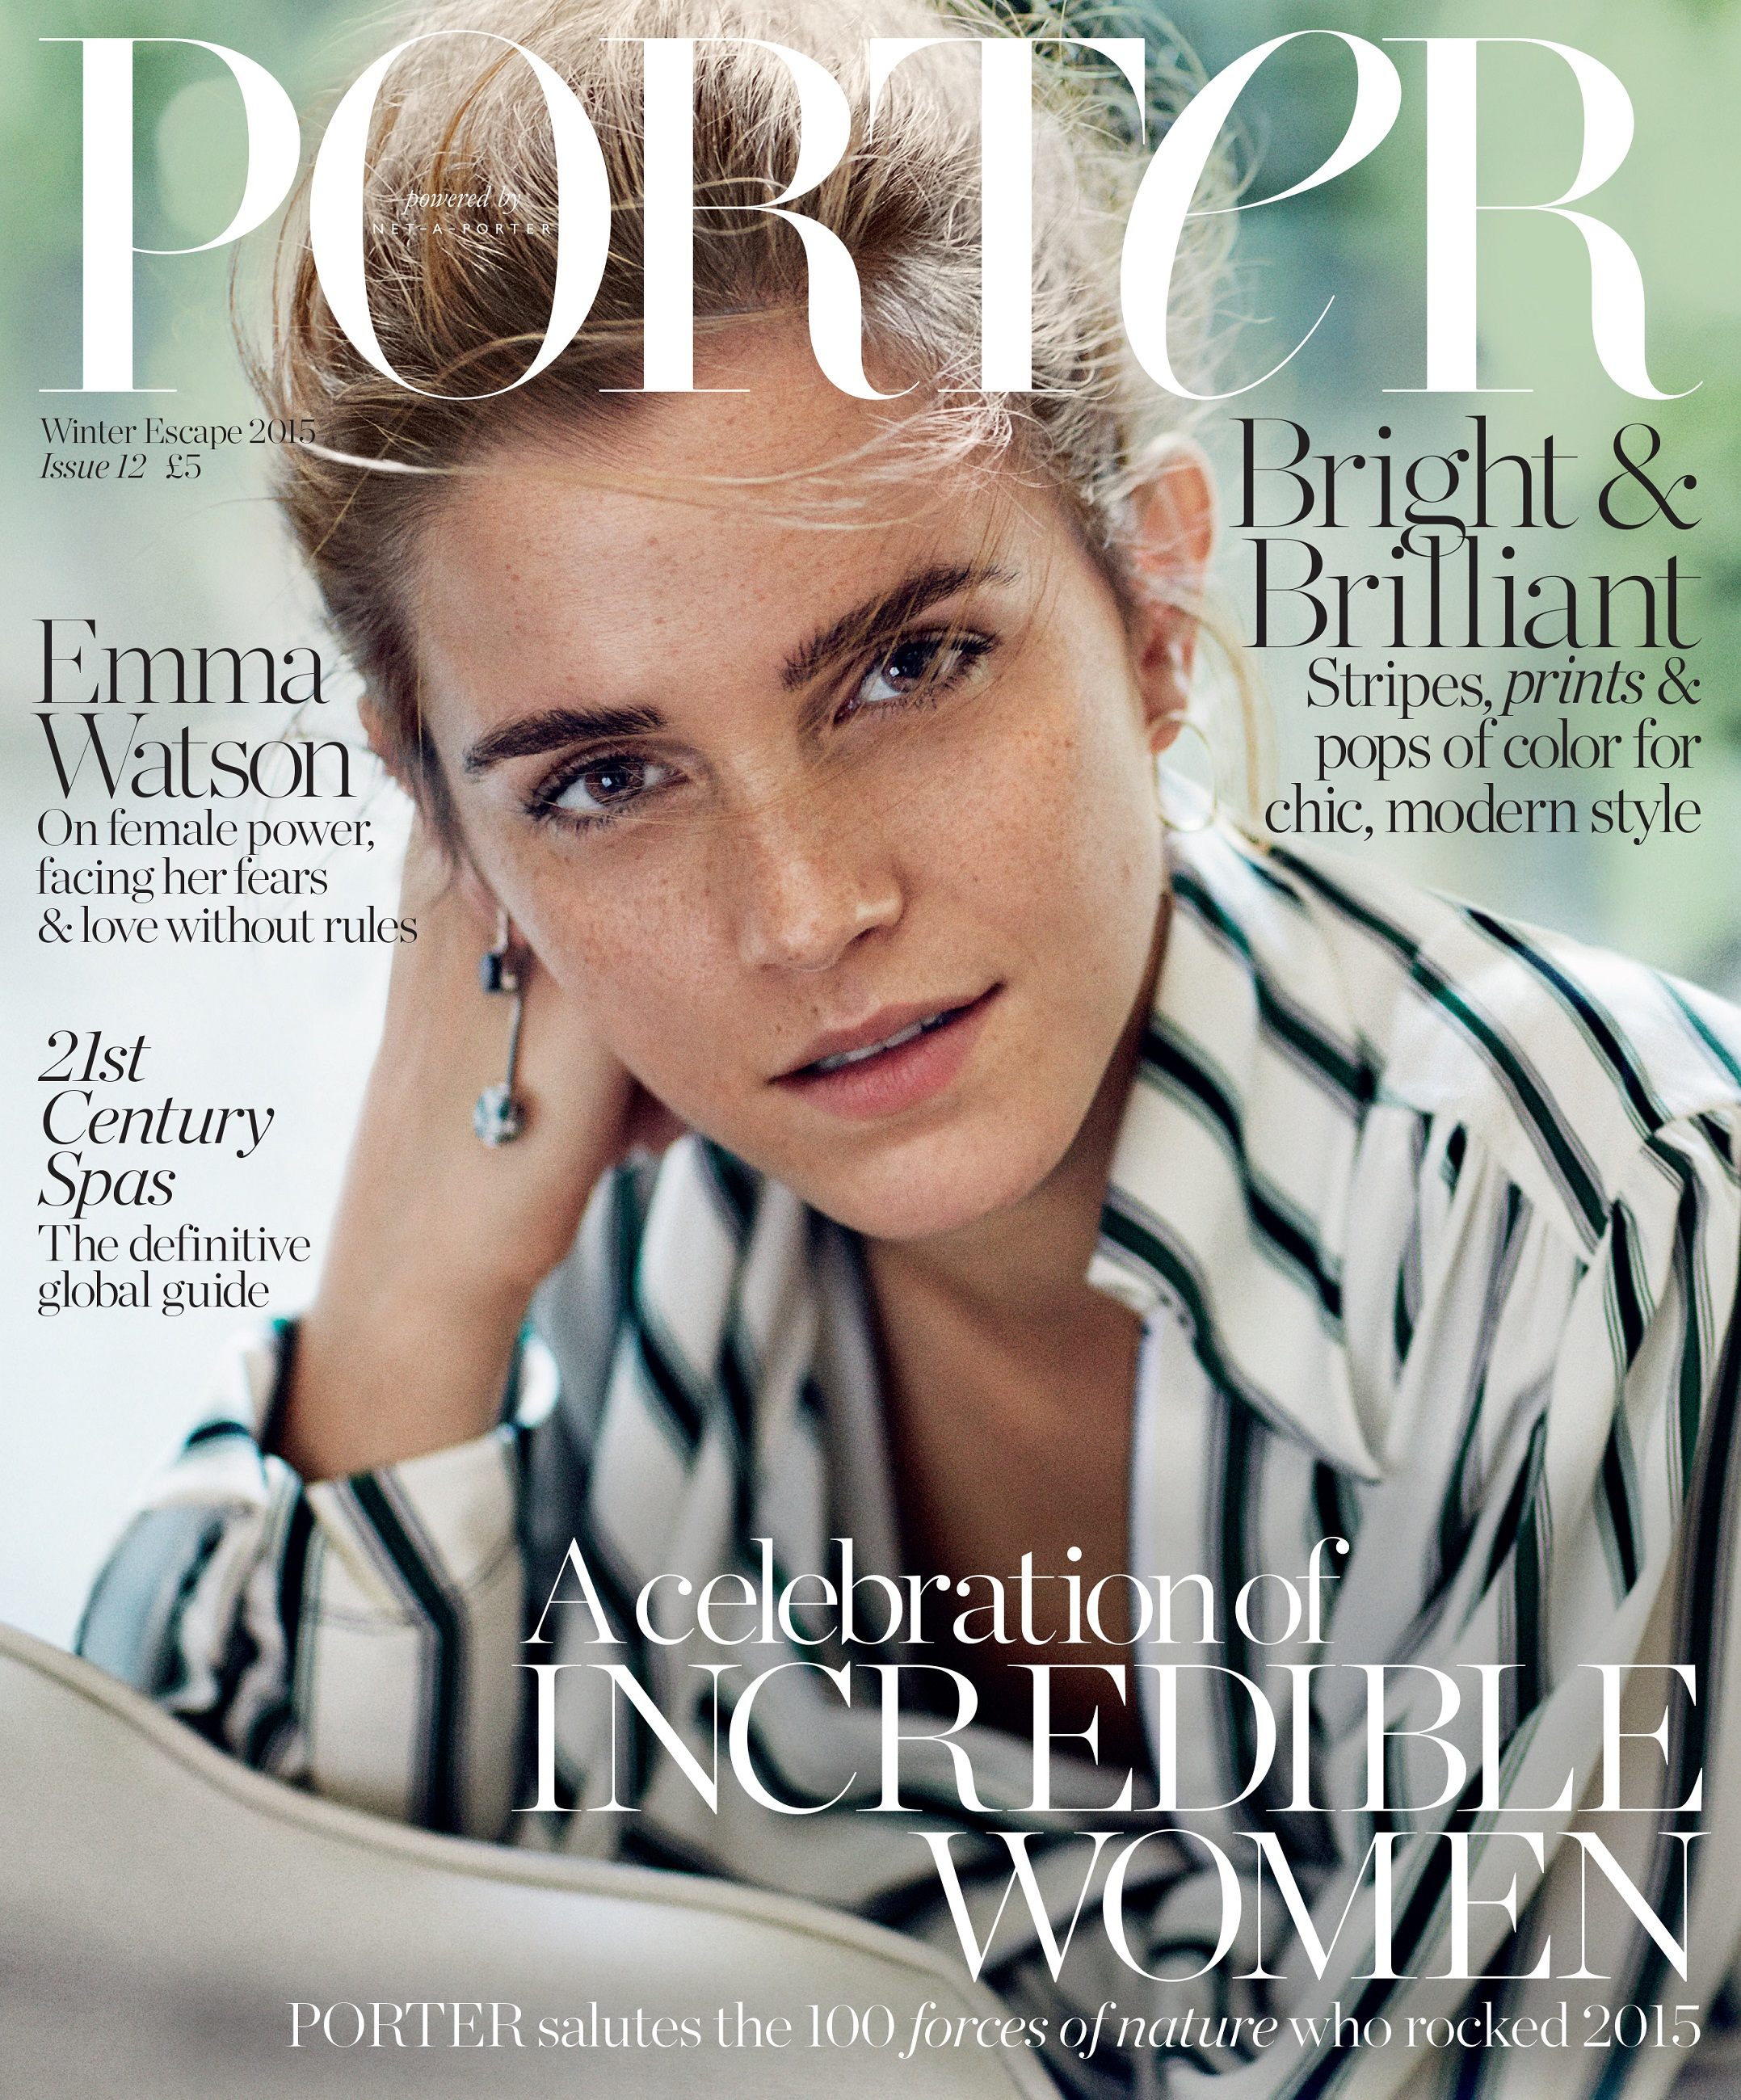 UK cover - PORTER Winter Escape 2015 - Emma Watson